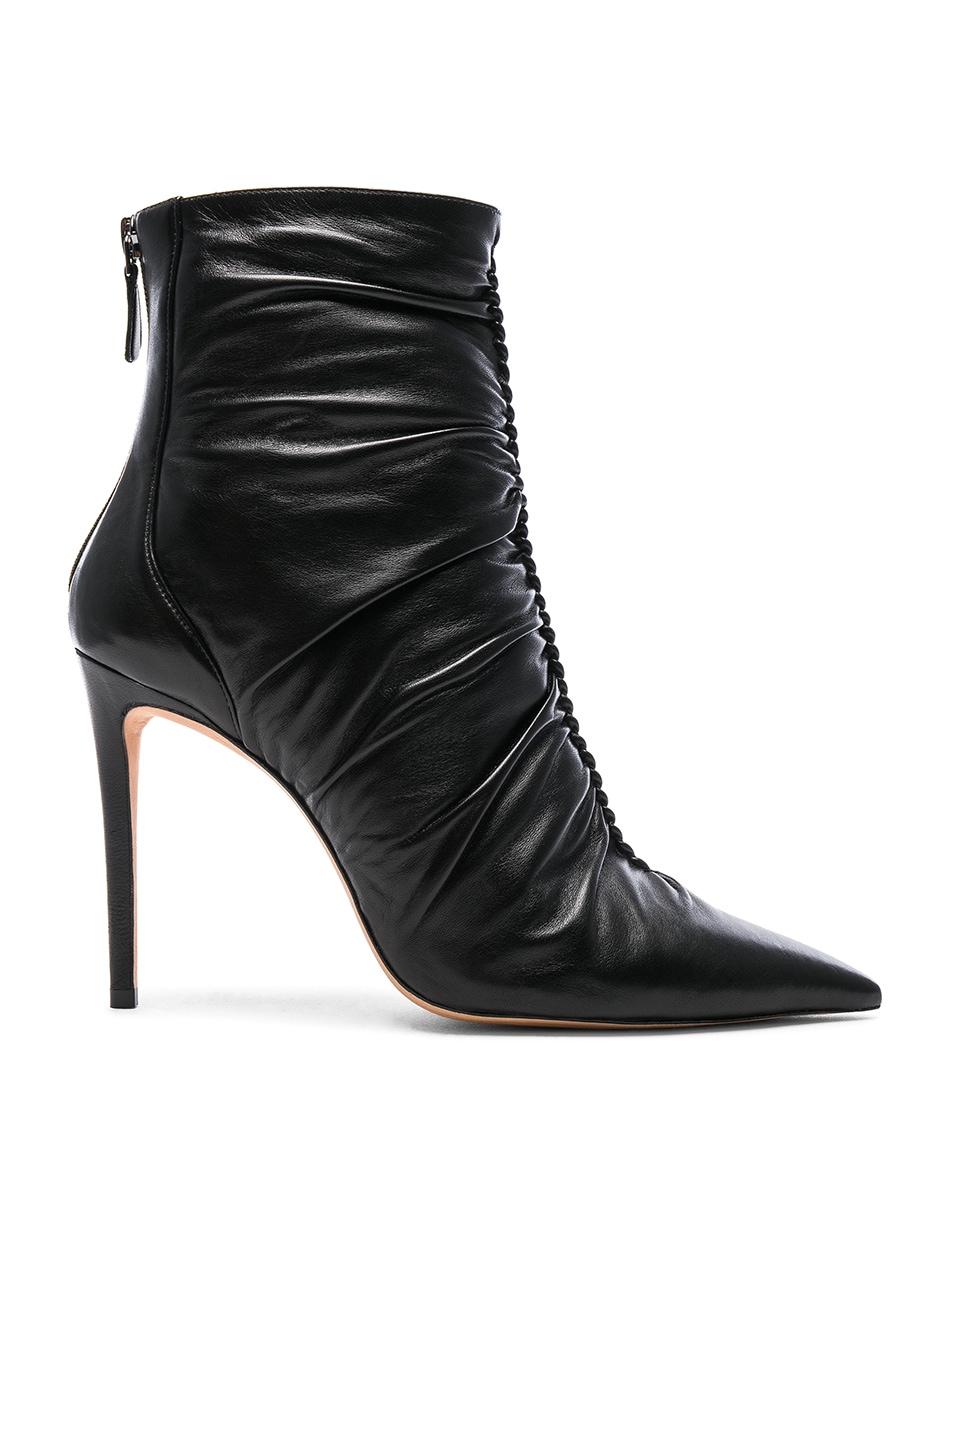 Image 1 of Alexandre Birman Susanna Ankle Boots in Black